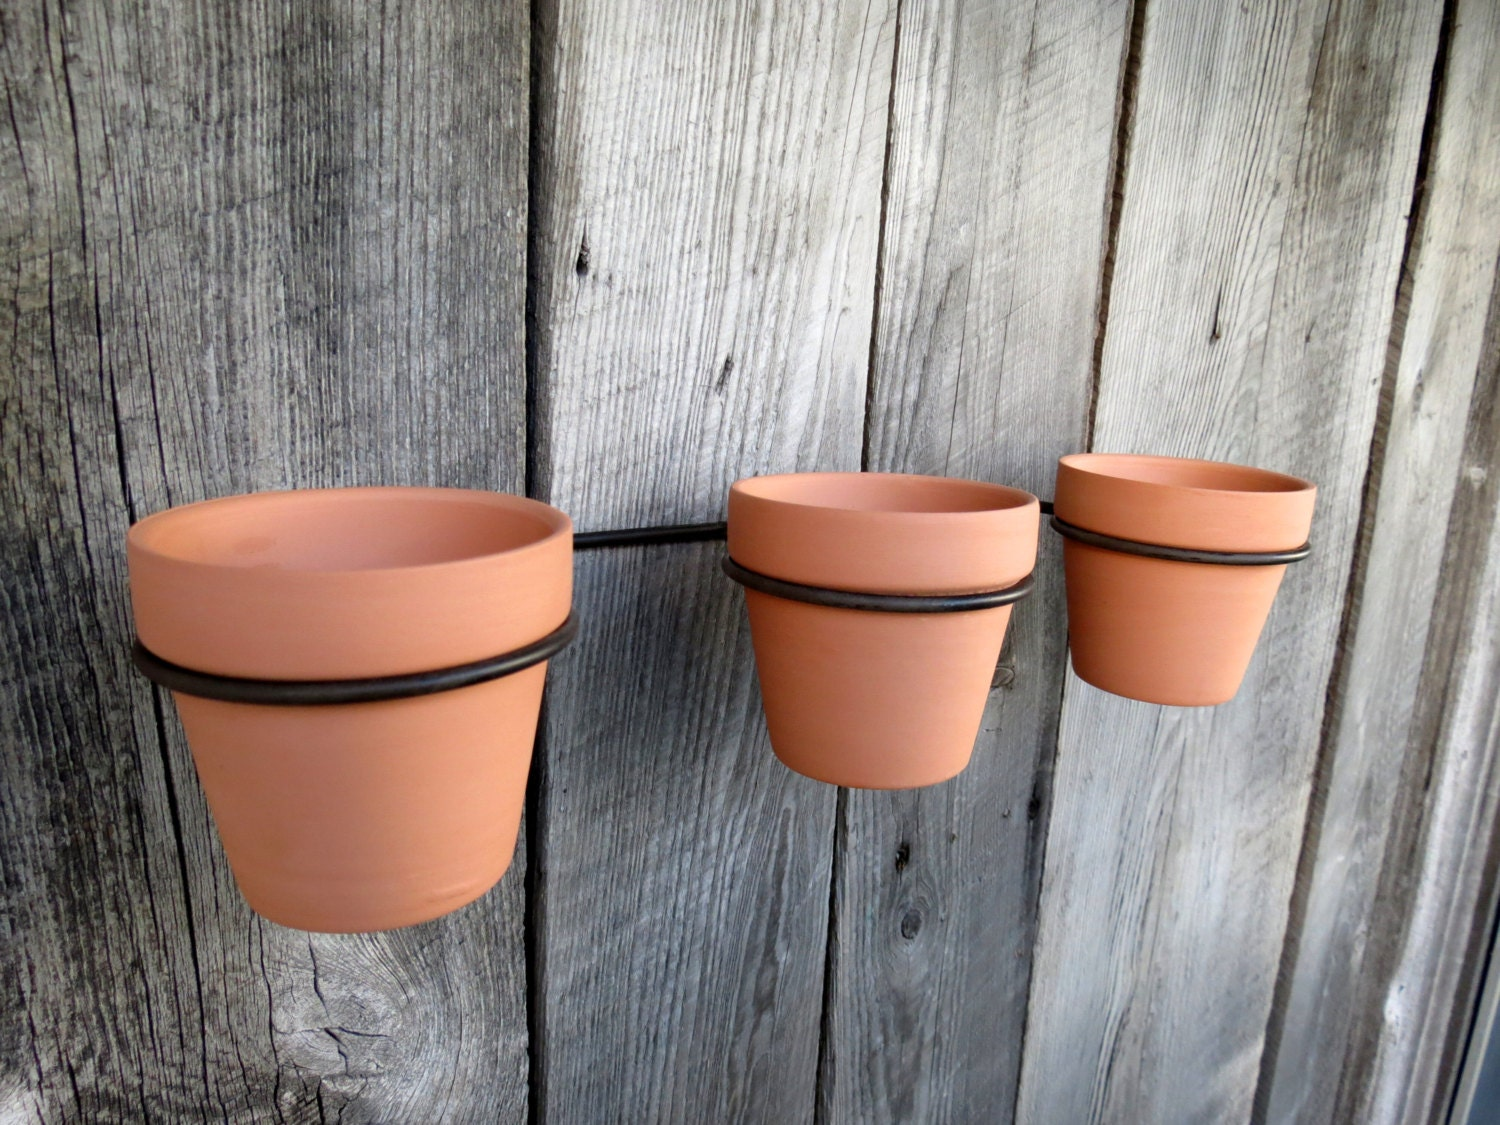 Terra Cotta Flower Pots With Wall Support Rack Wall Hanging